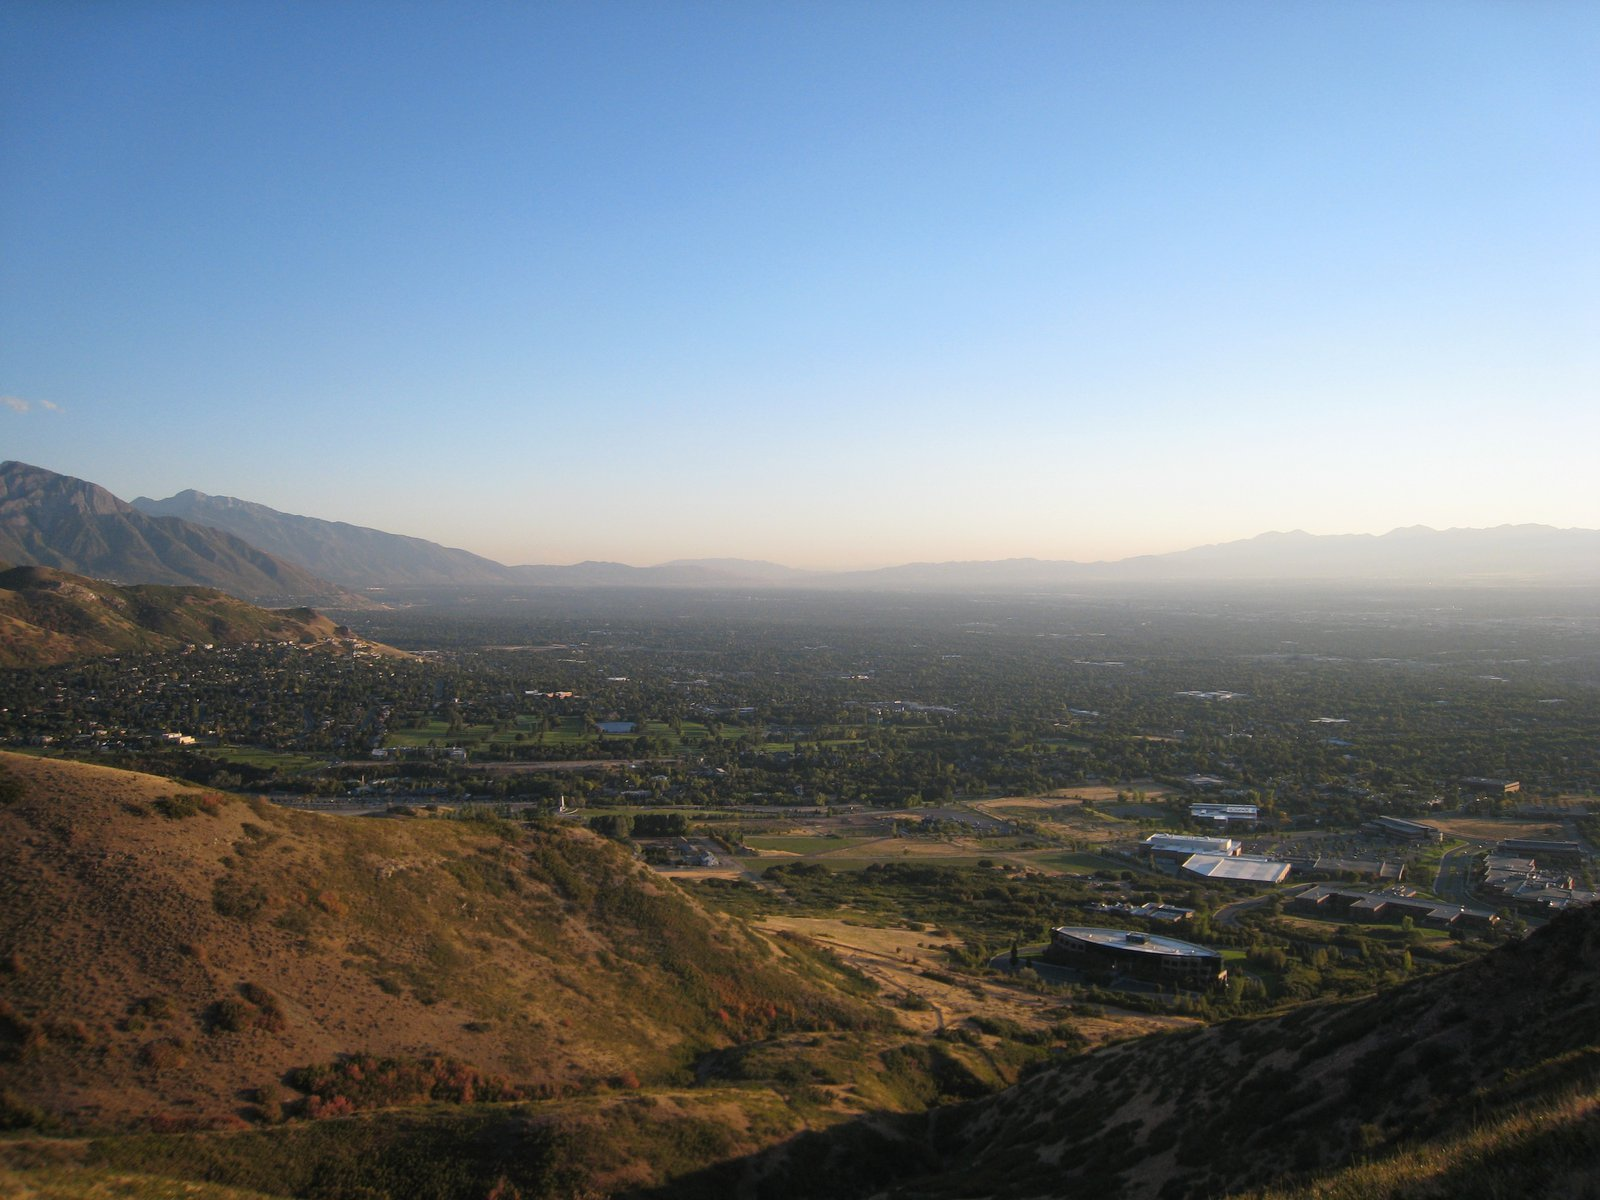 South end of the salt lake valley